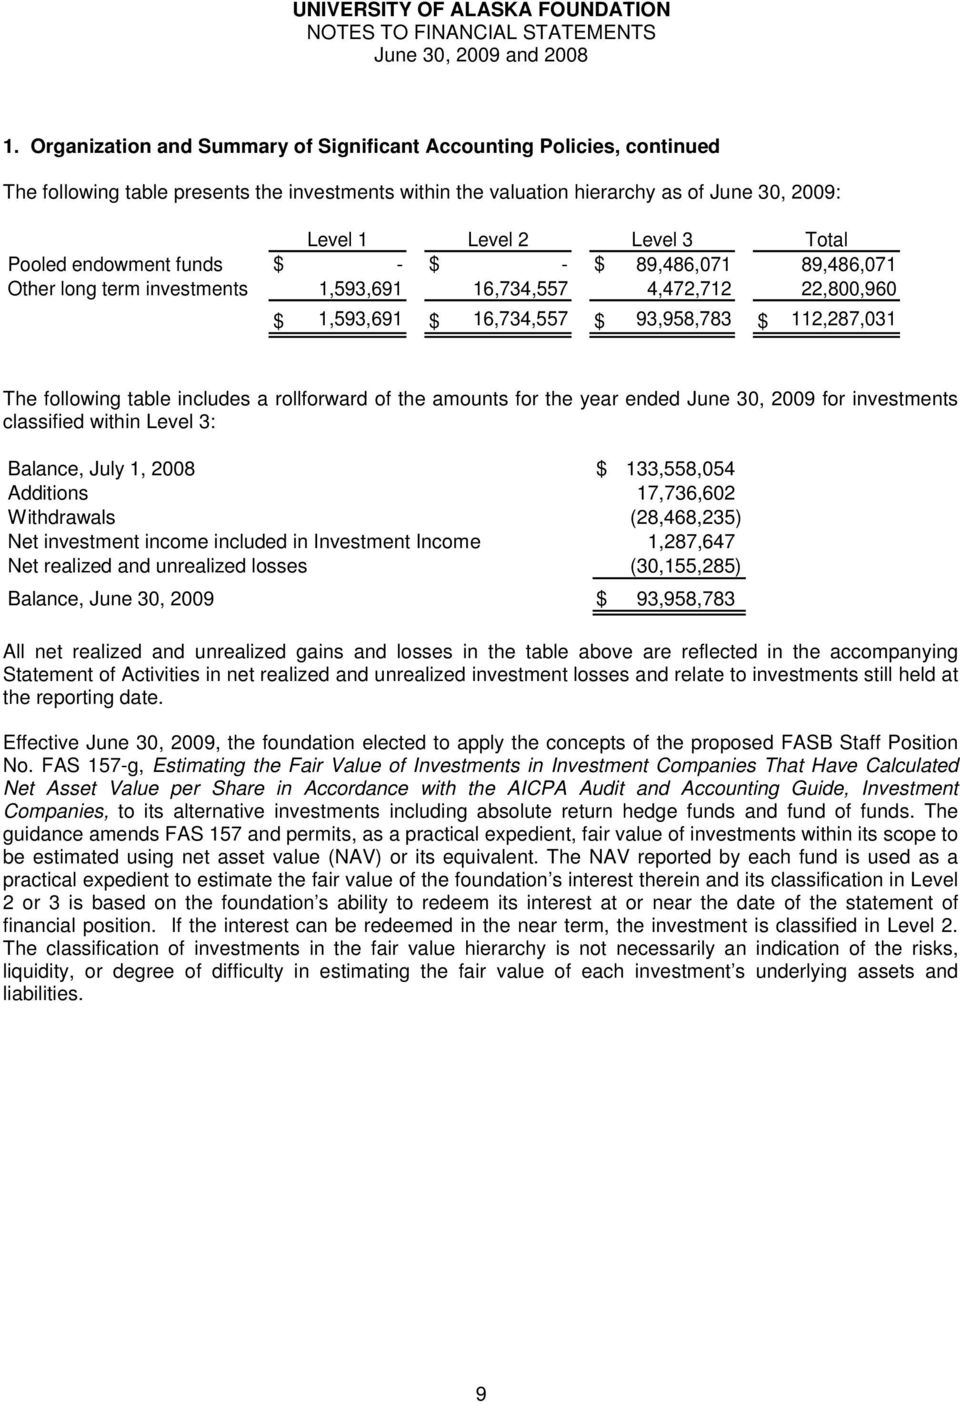 table includes a rollforward of the amounts for the year ended June 30, 2009 for investments classified within Level 3: Balance, July 1, 2008 $ 133,558,054 Additions 17,736,602 Withdrawals